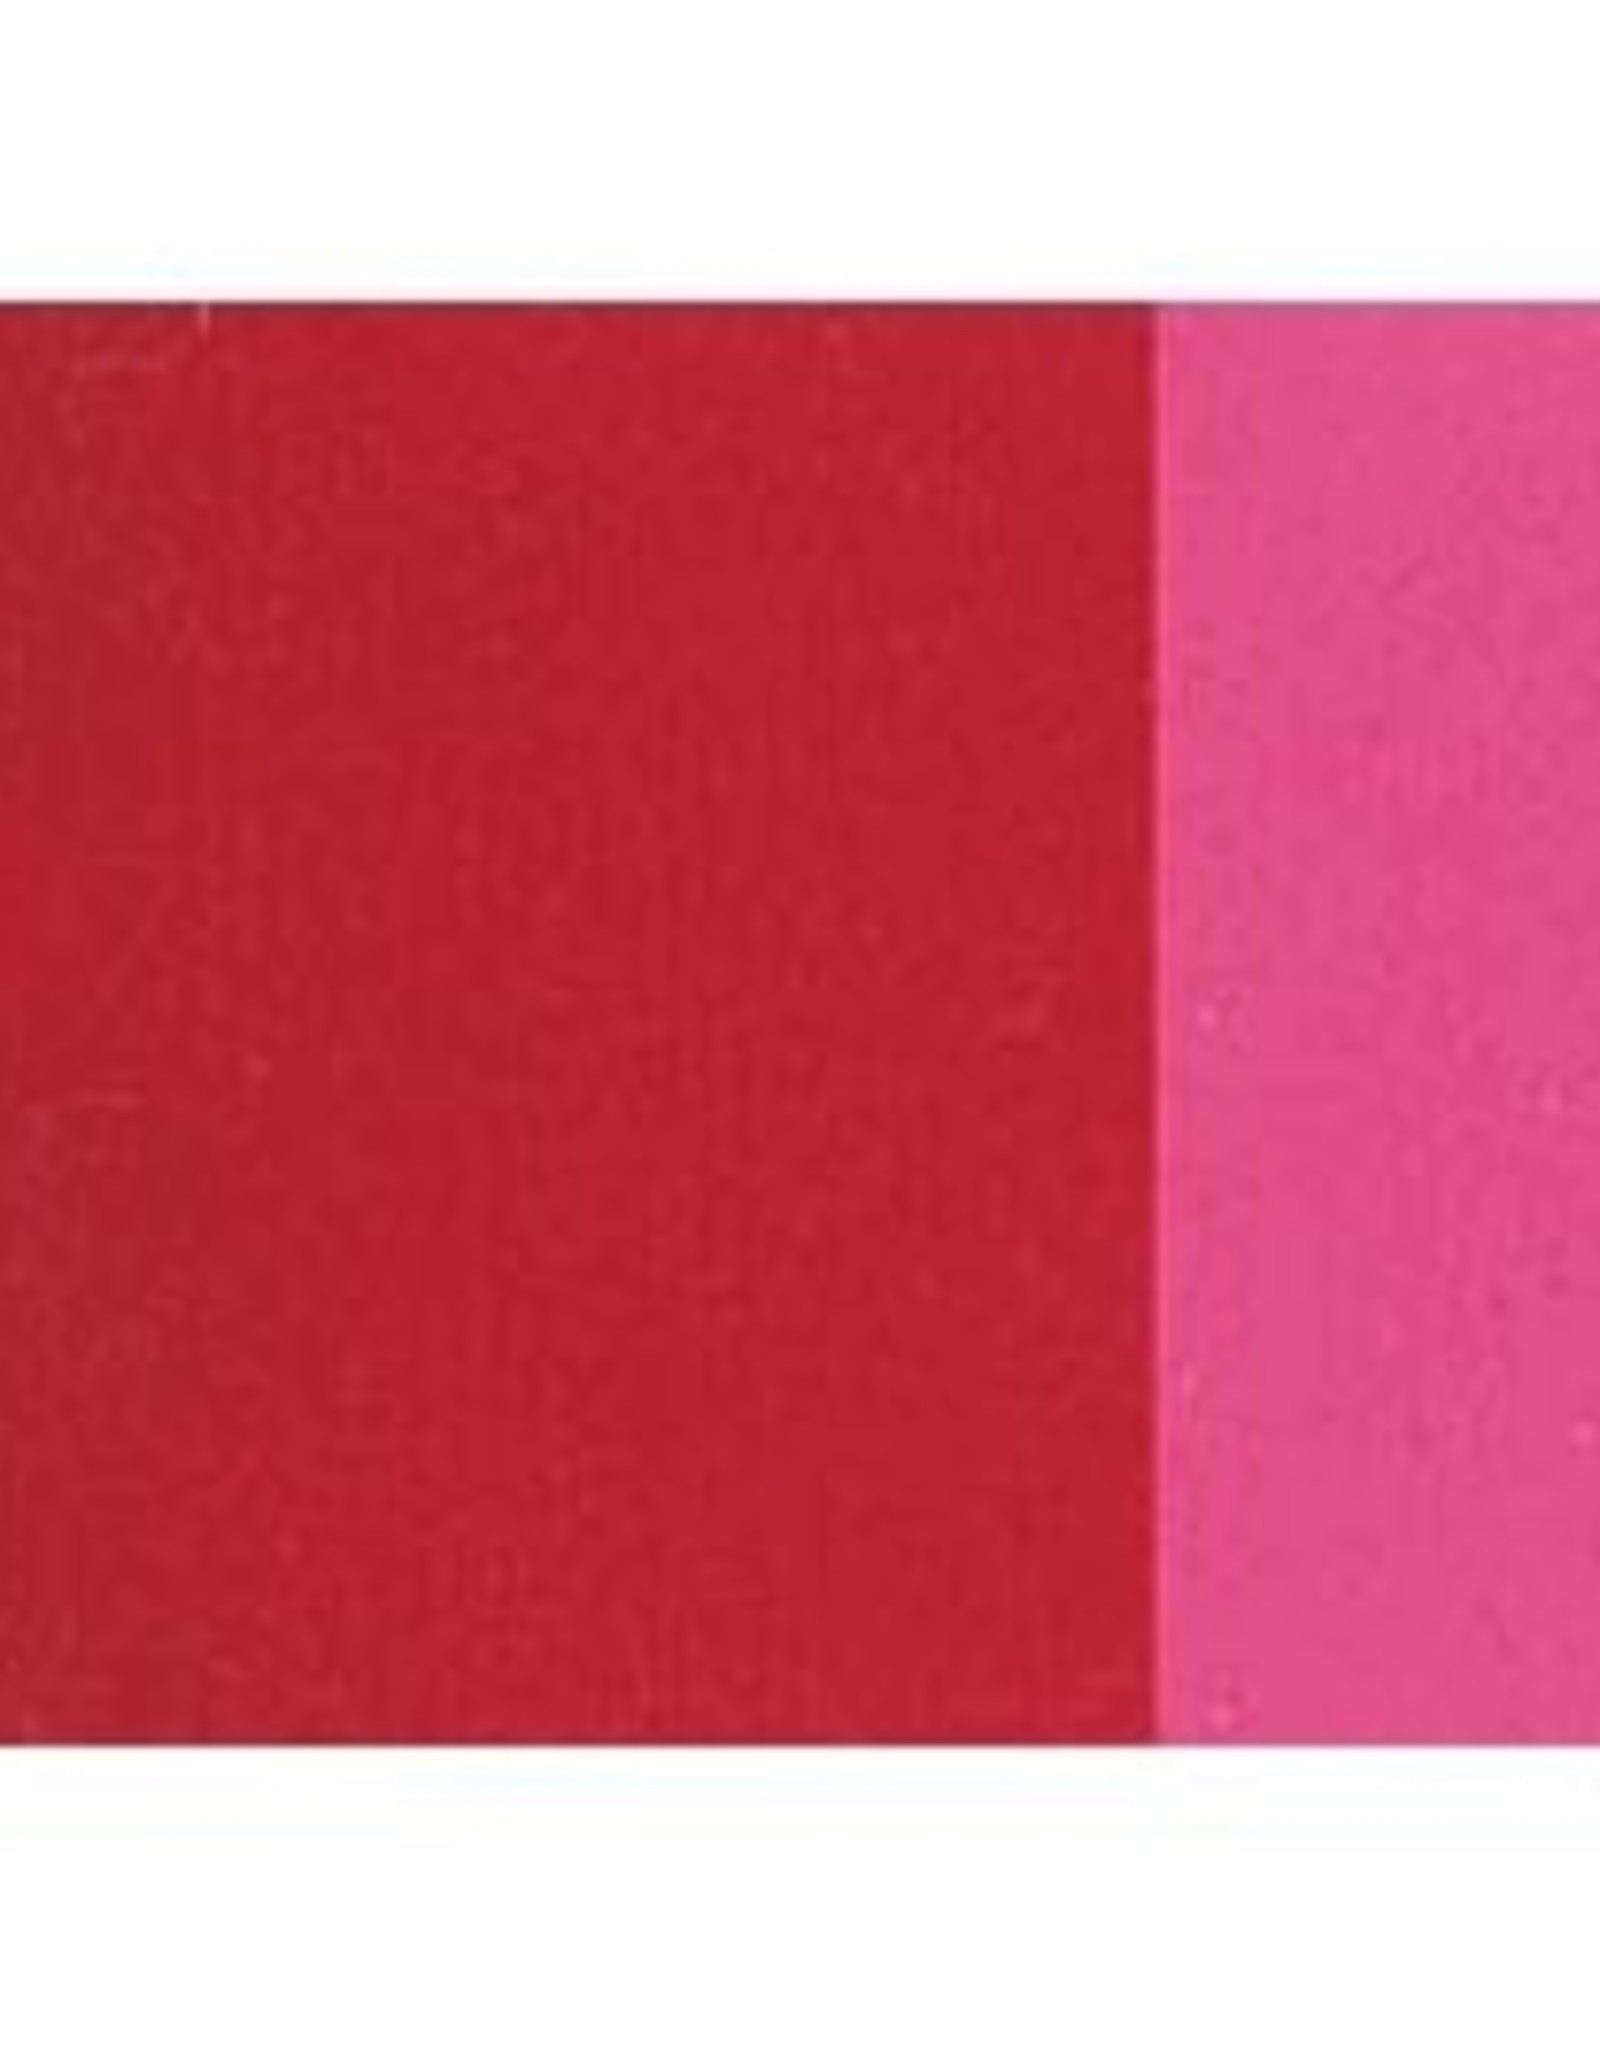 Holbein Oil Color Series D 40 ml Quinacridone Red 40 ml